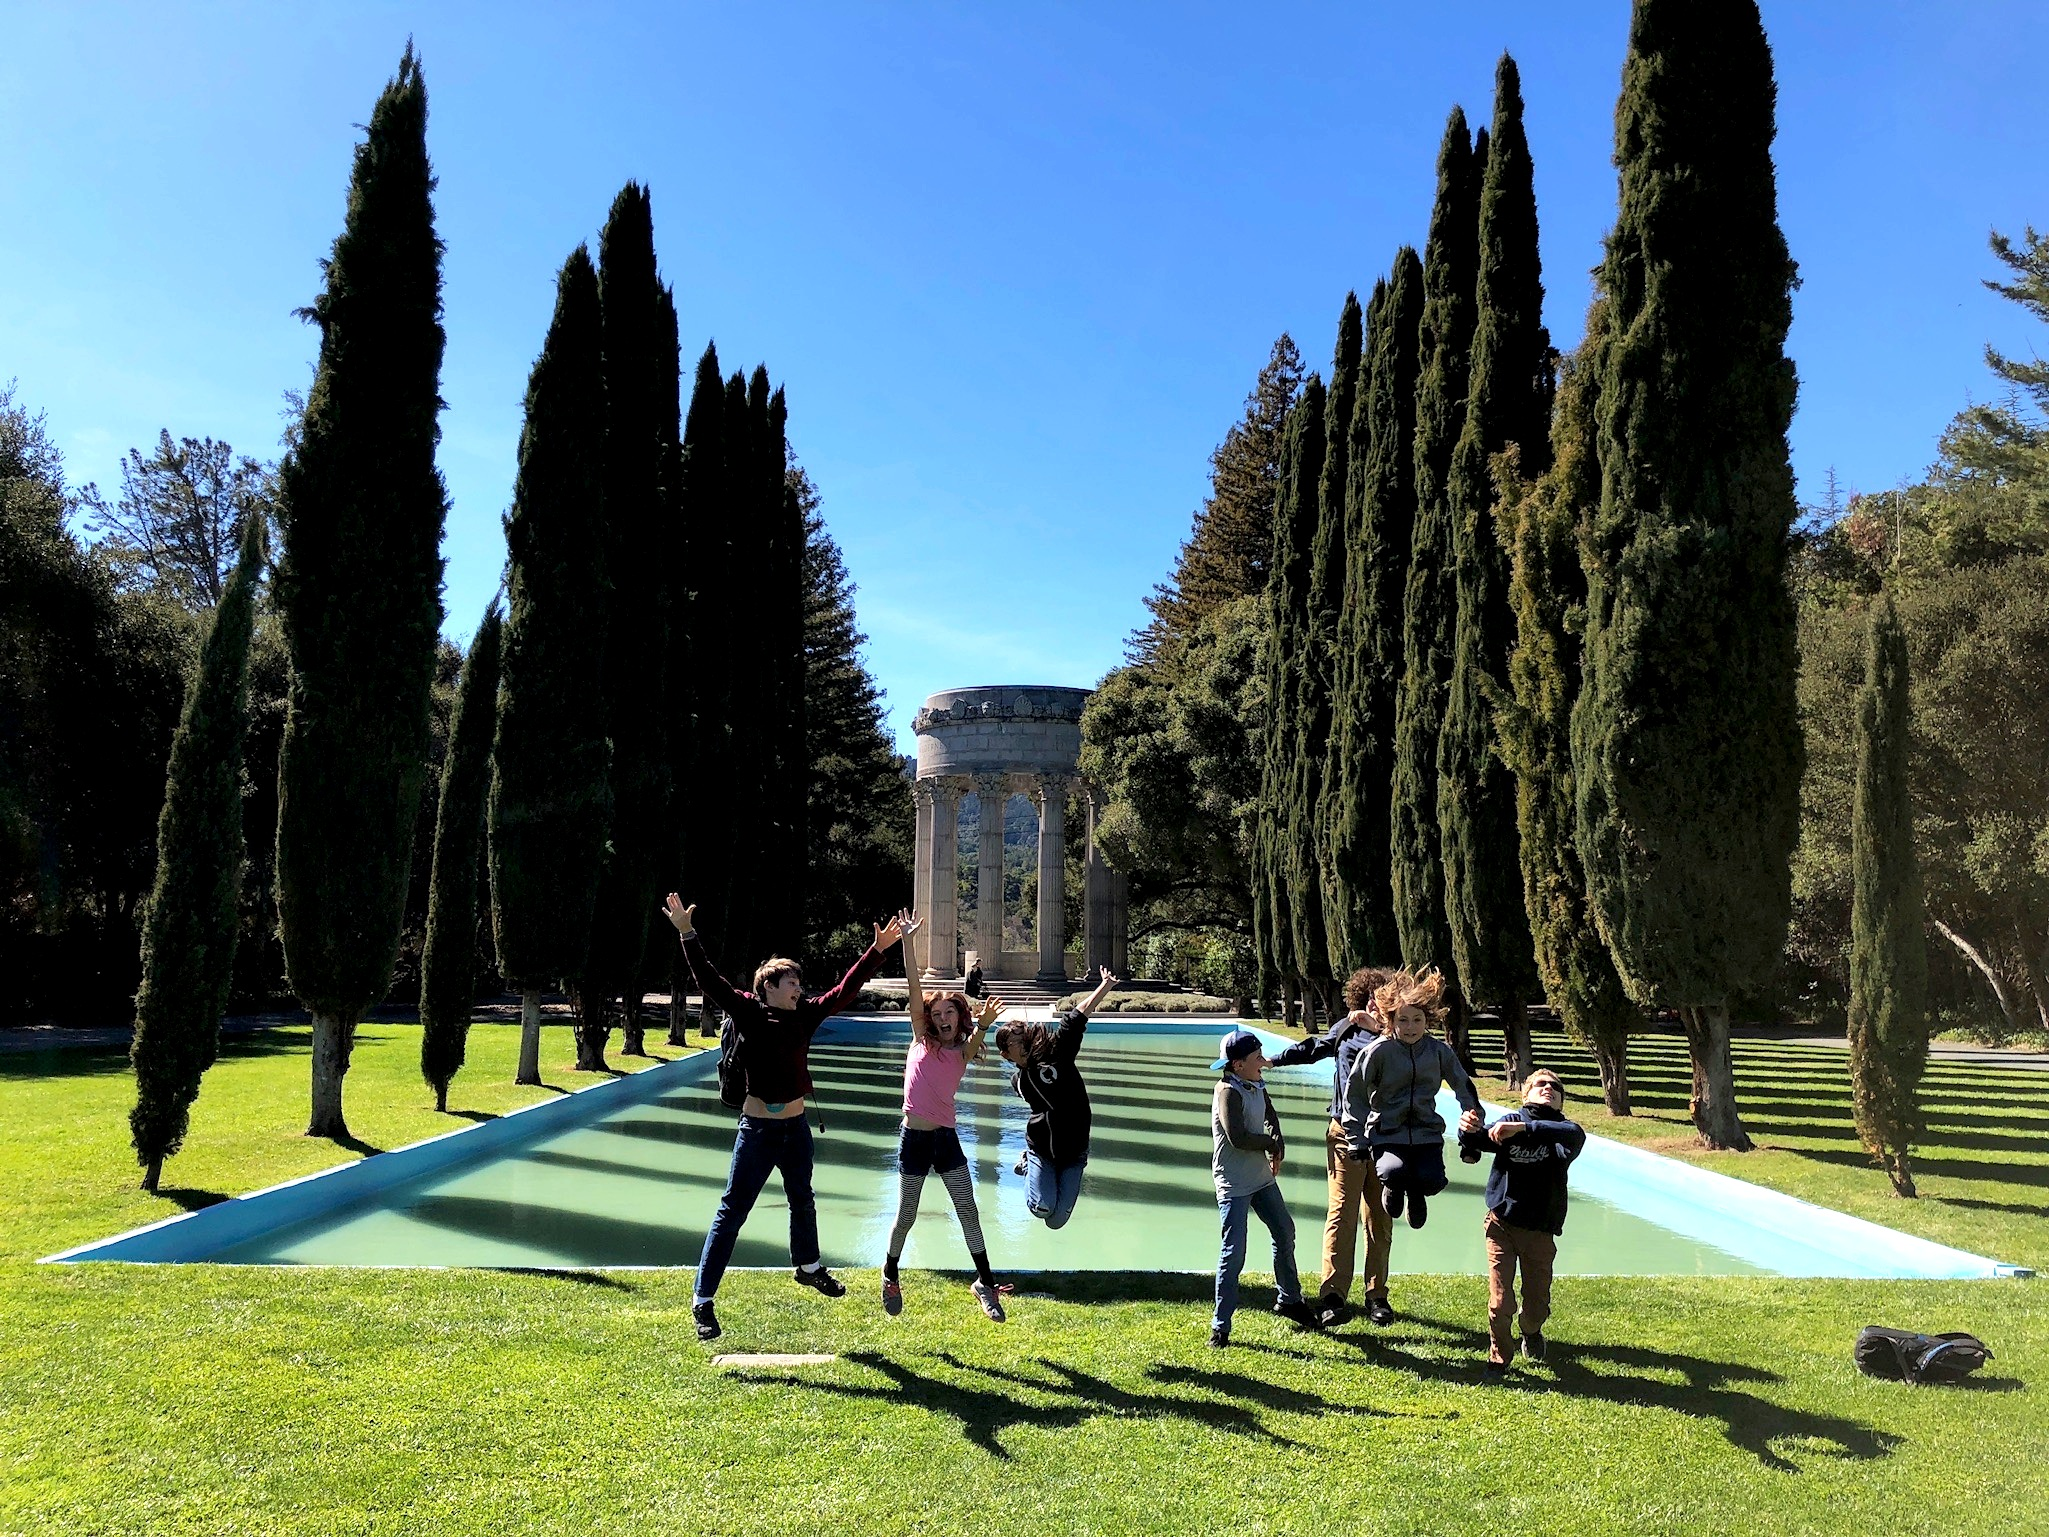 Visiting the Pulgas Water Temple